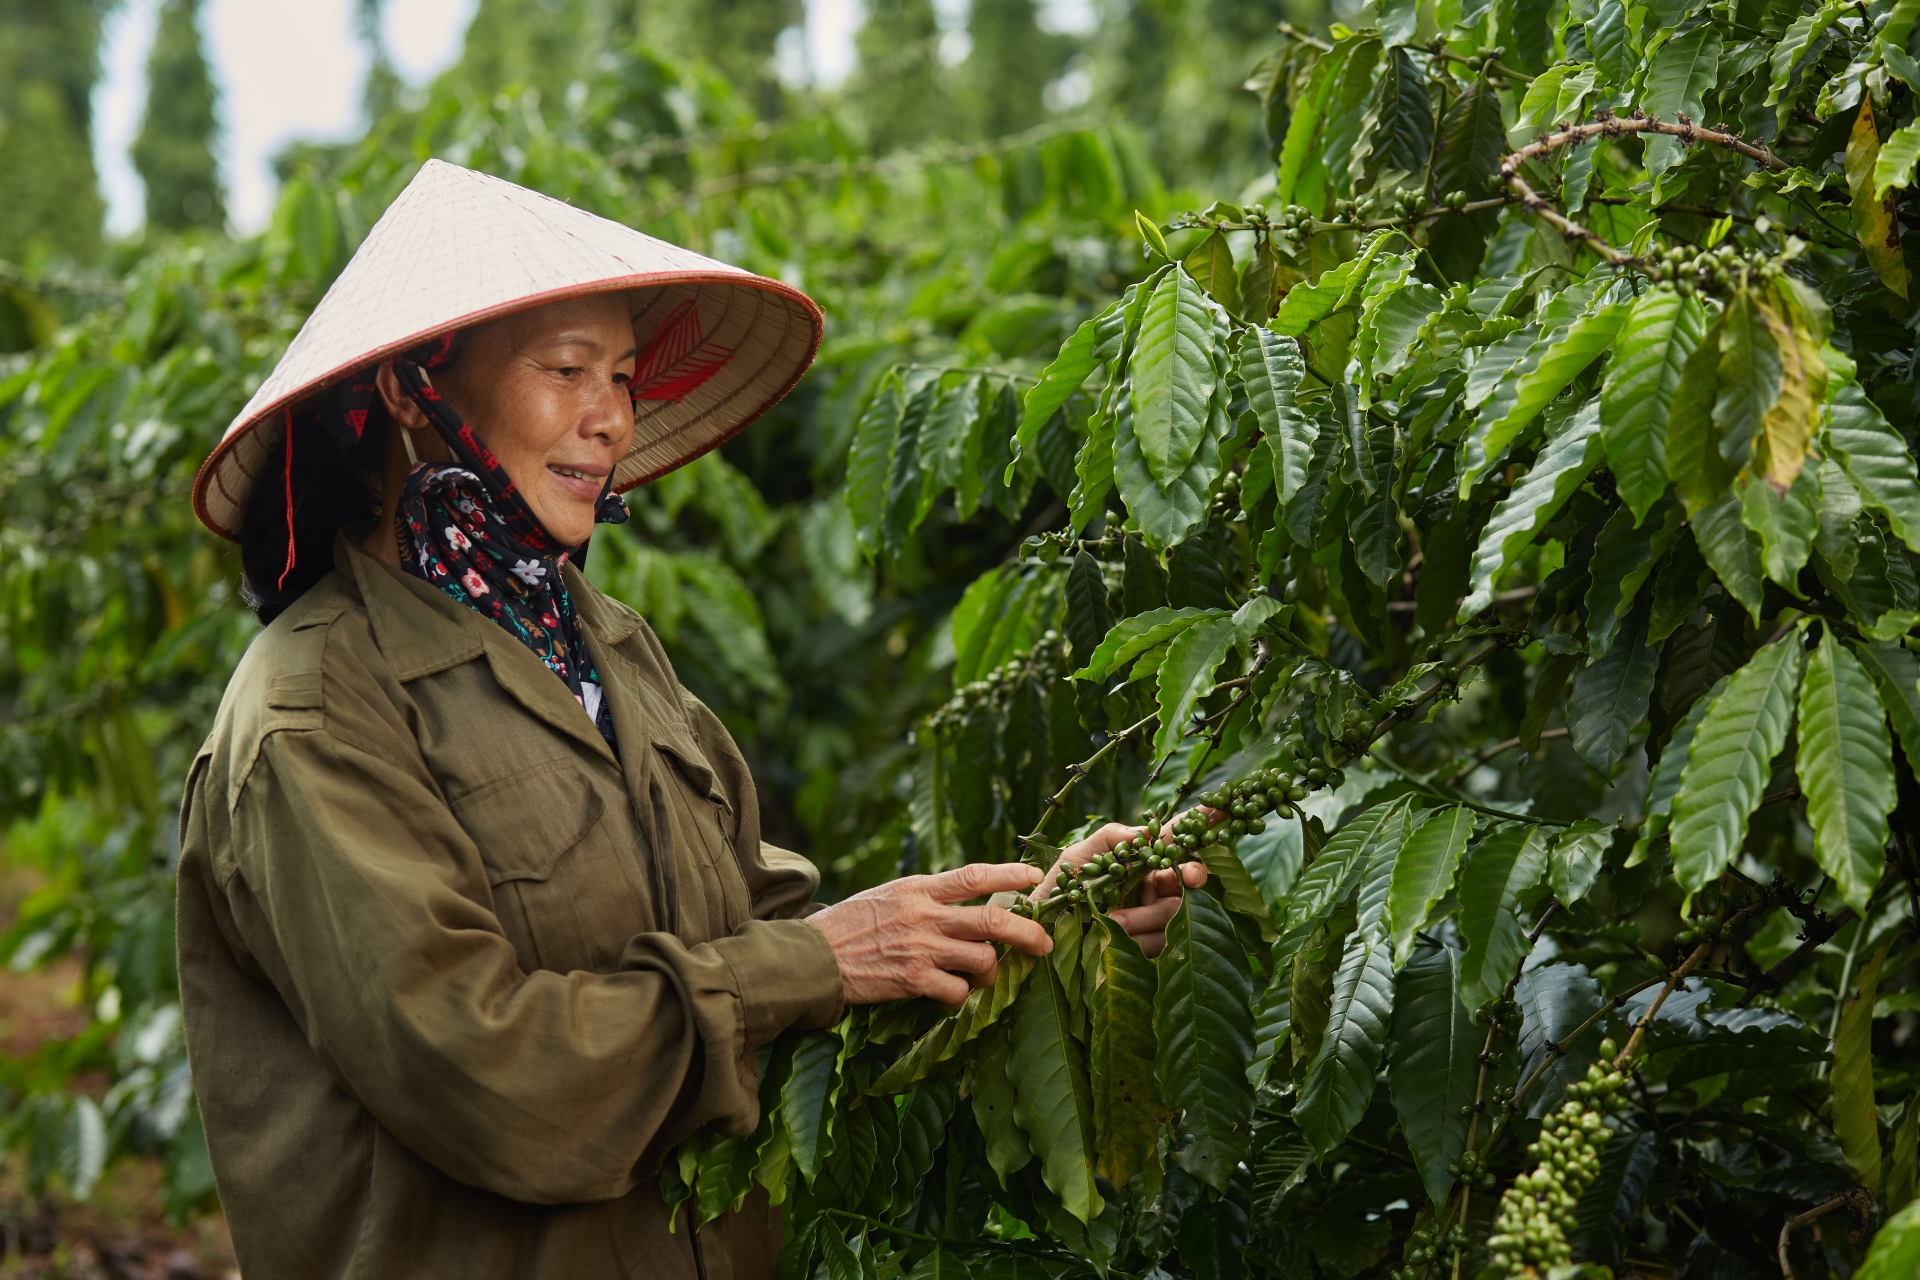 NESCAFÉ Plan in Vietnam marks 10 years of sustainable coffee production